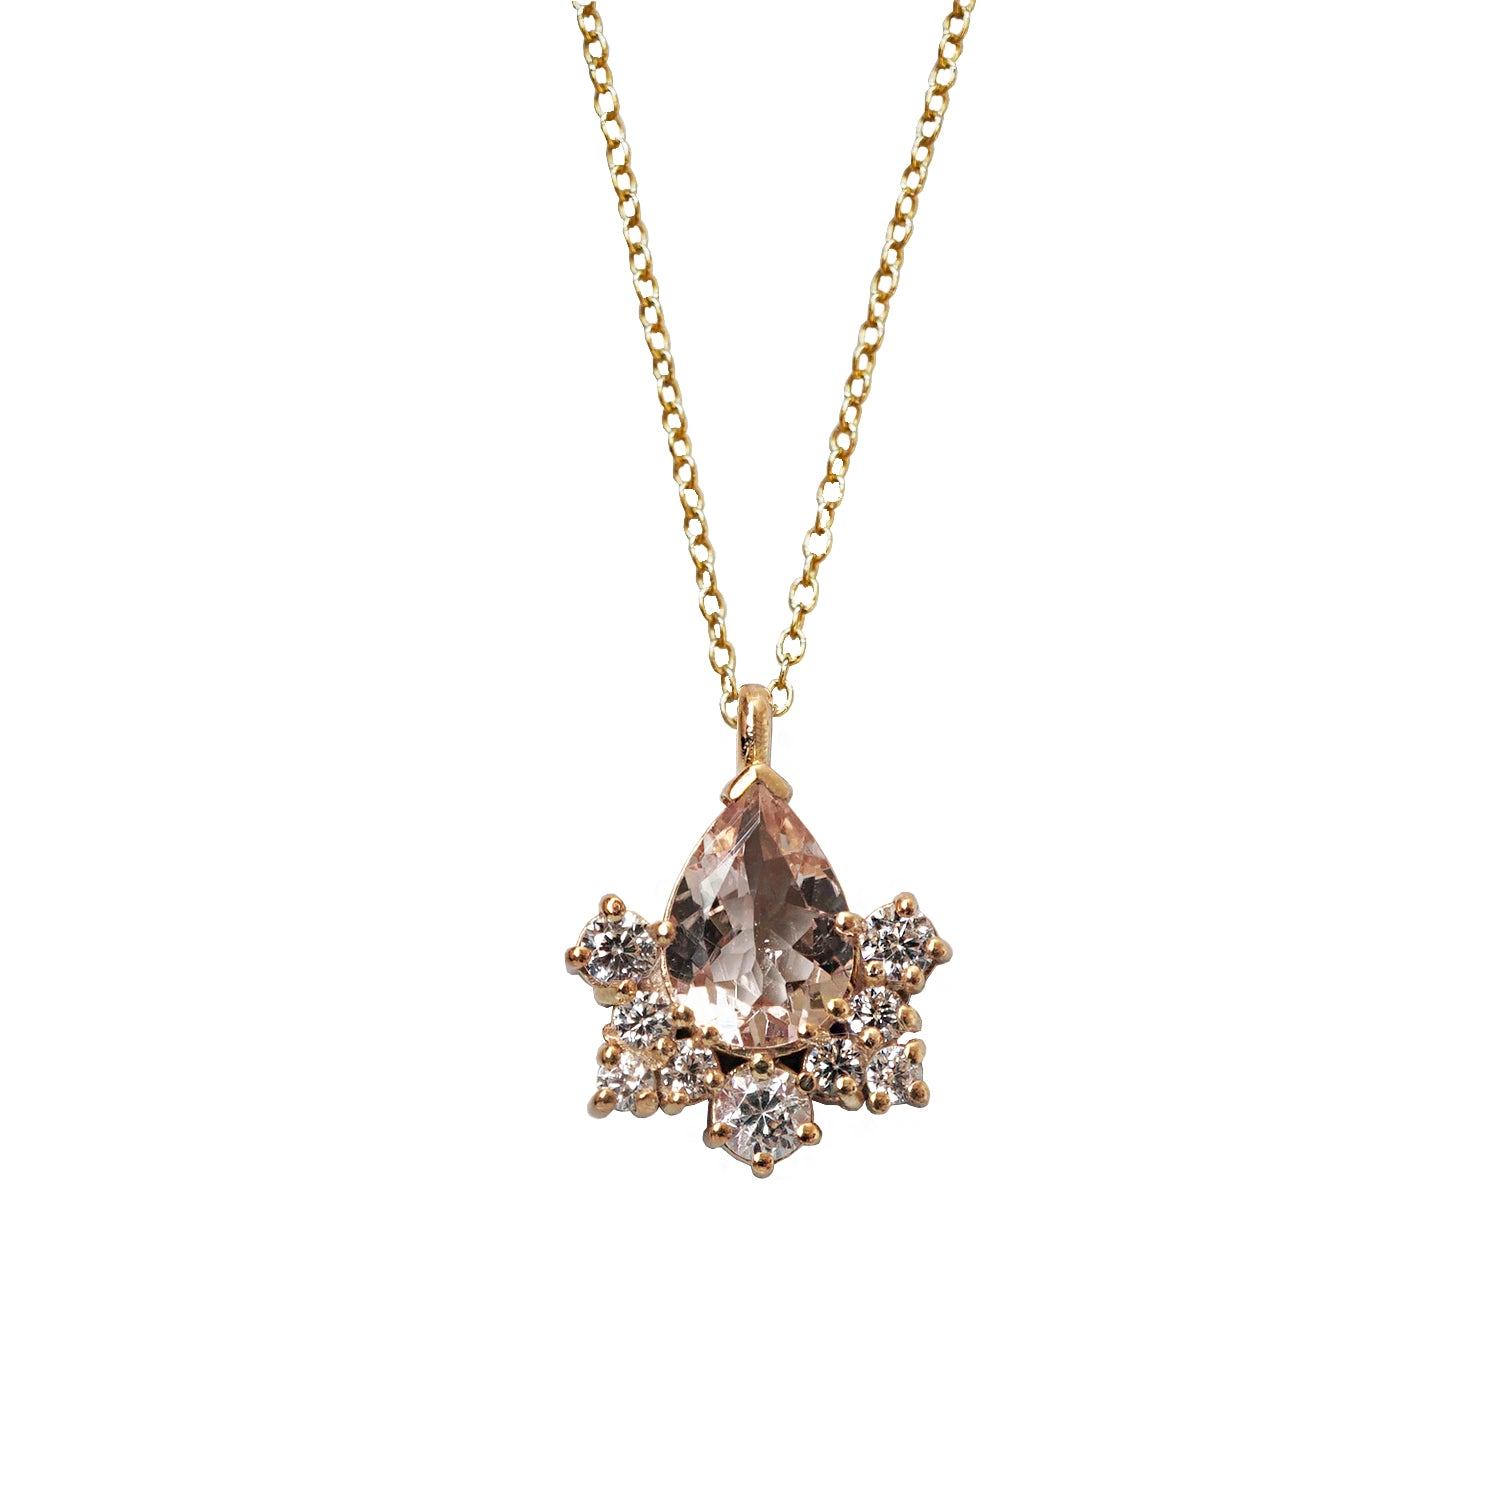 Sleeping Beauty Morganite Necklace